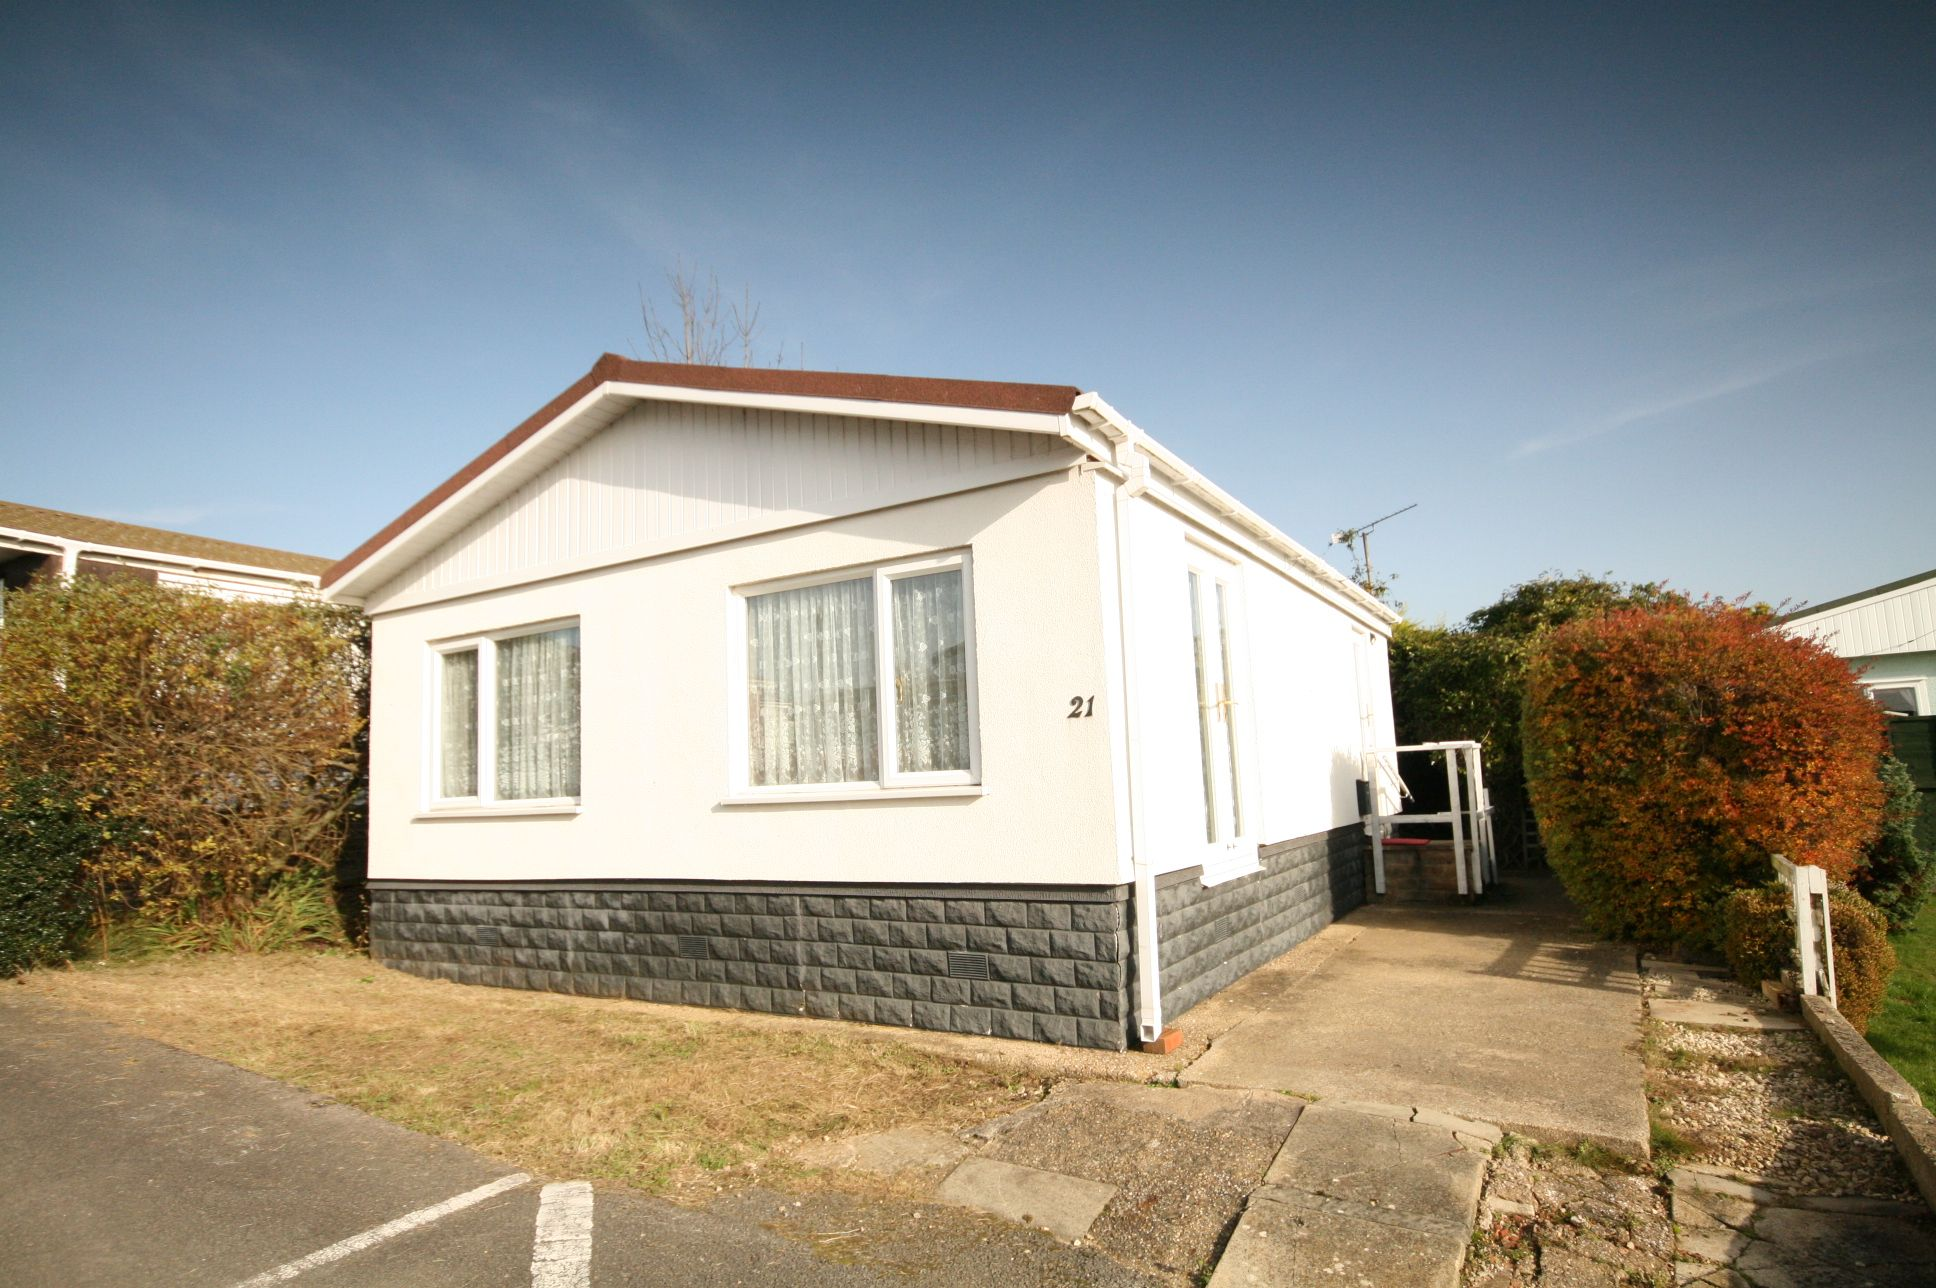 2 Bedroom Park Home House For Sale - Photograph 1